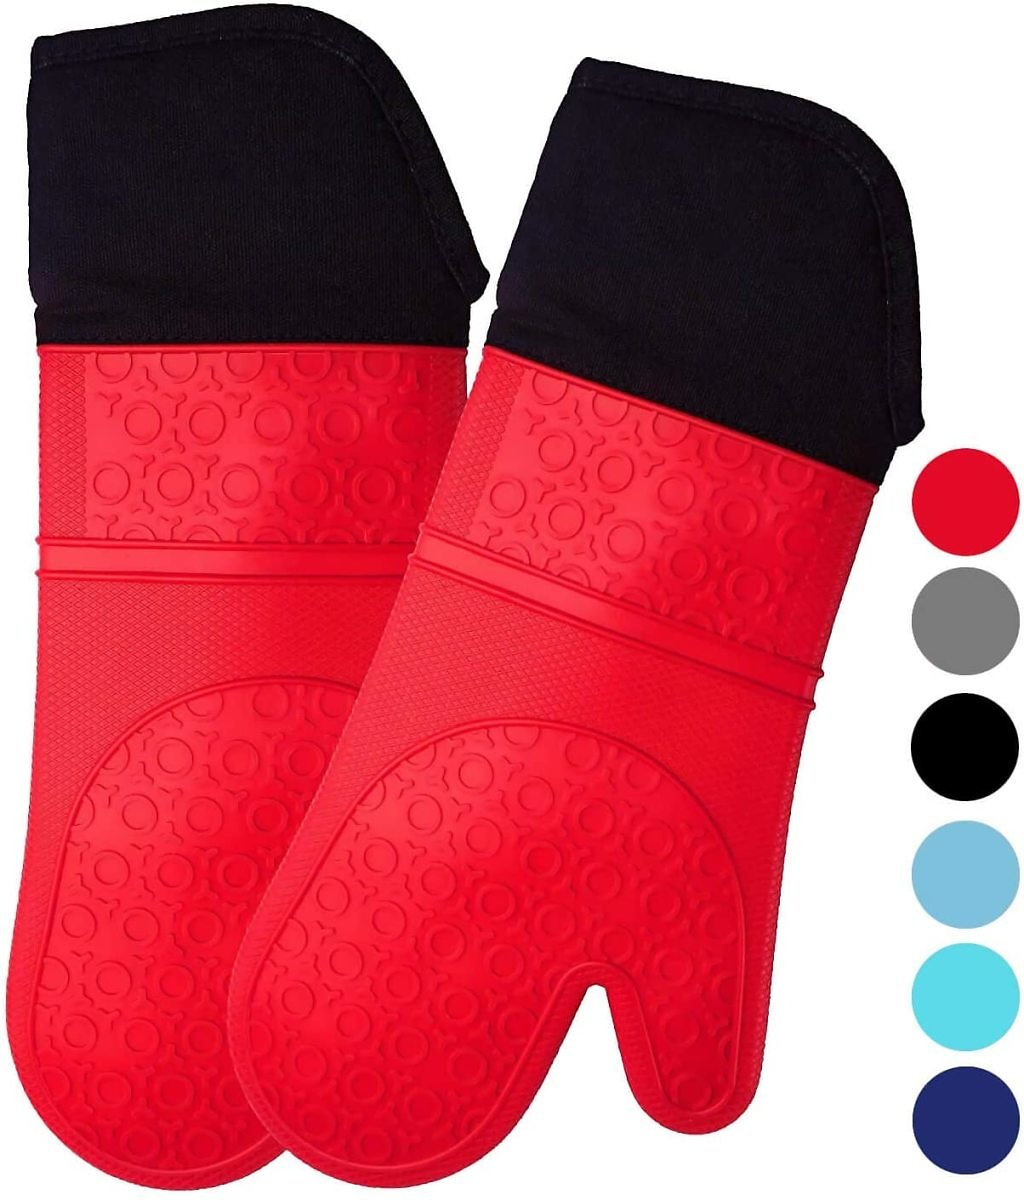 Extra Long Professional Silicone Oven Mitts with Quilted Liner, Heat Resistant Pot Holders, Flexible Oven Gloves, Red